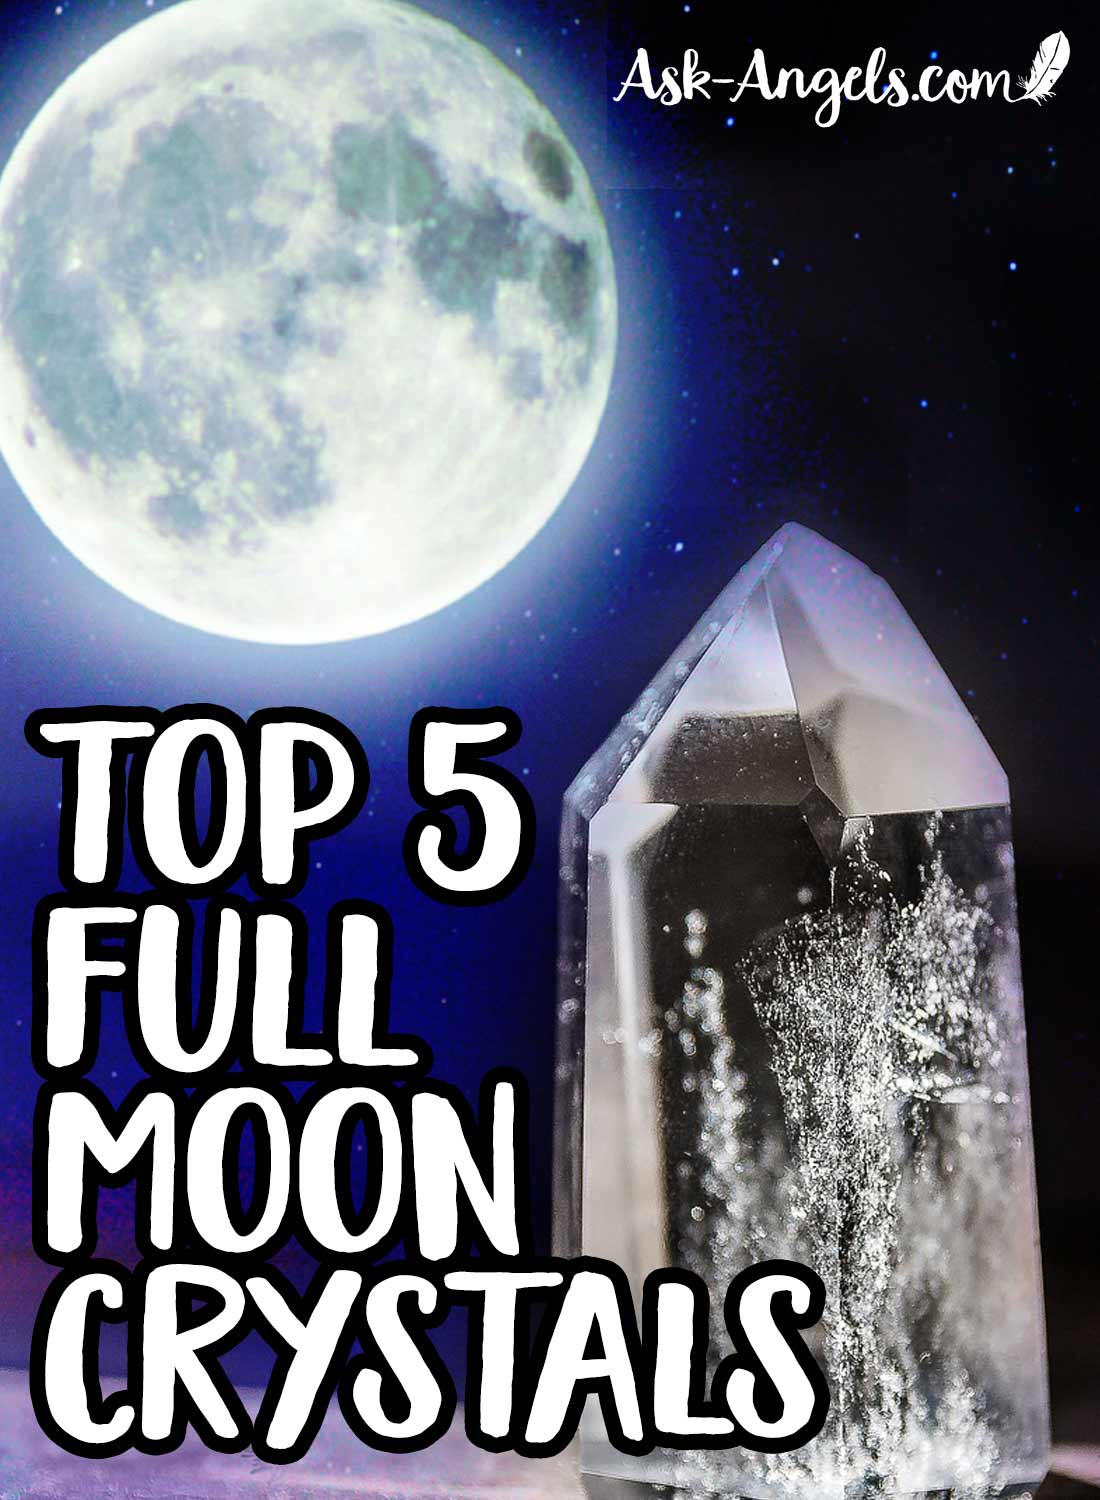 Top 5 Full Moon Crystals